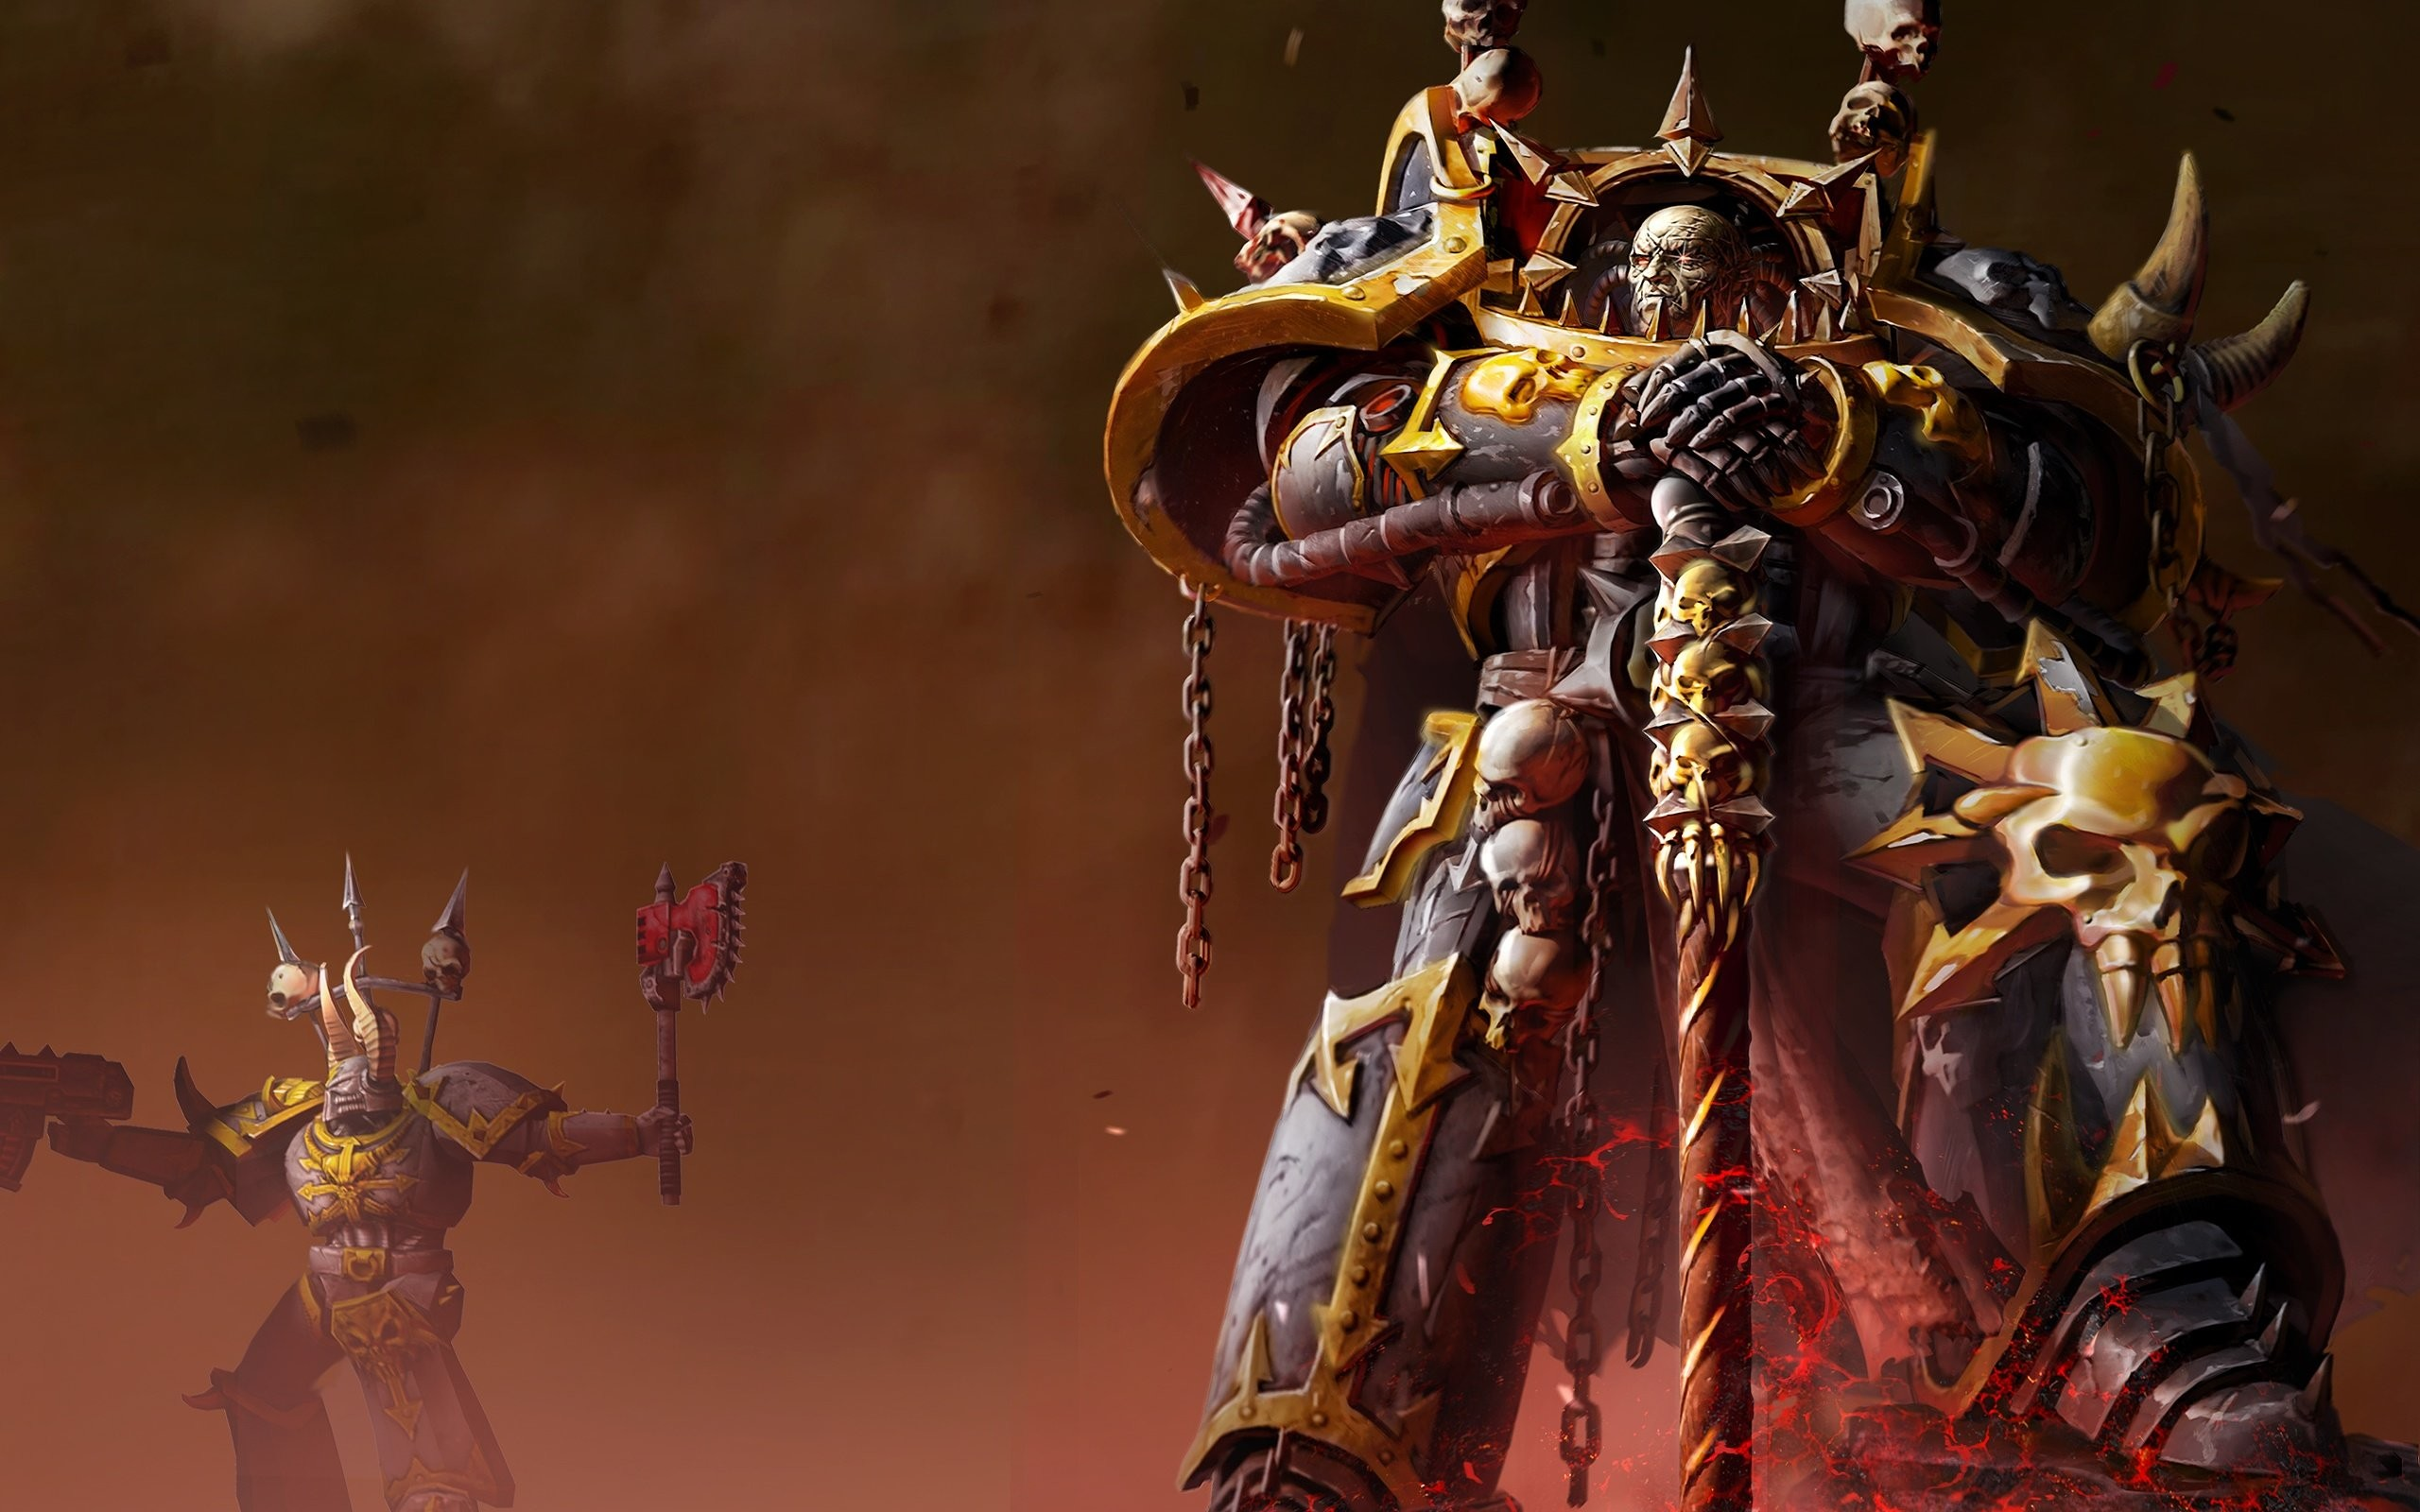 2560x1600 Wallpaper zu Warhammer 40.000: Dawn of War 2 - Retribution herunterladen